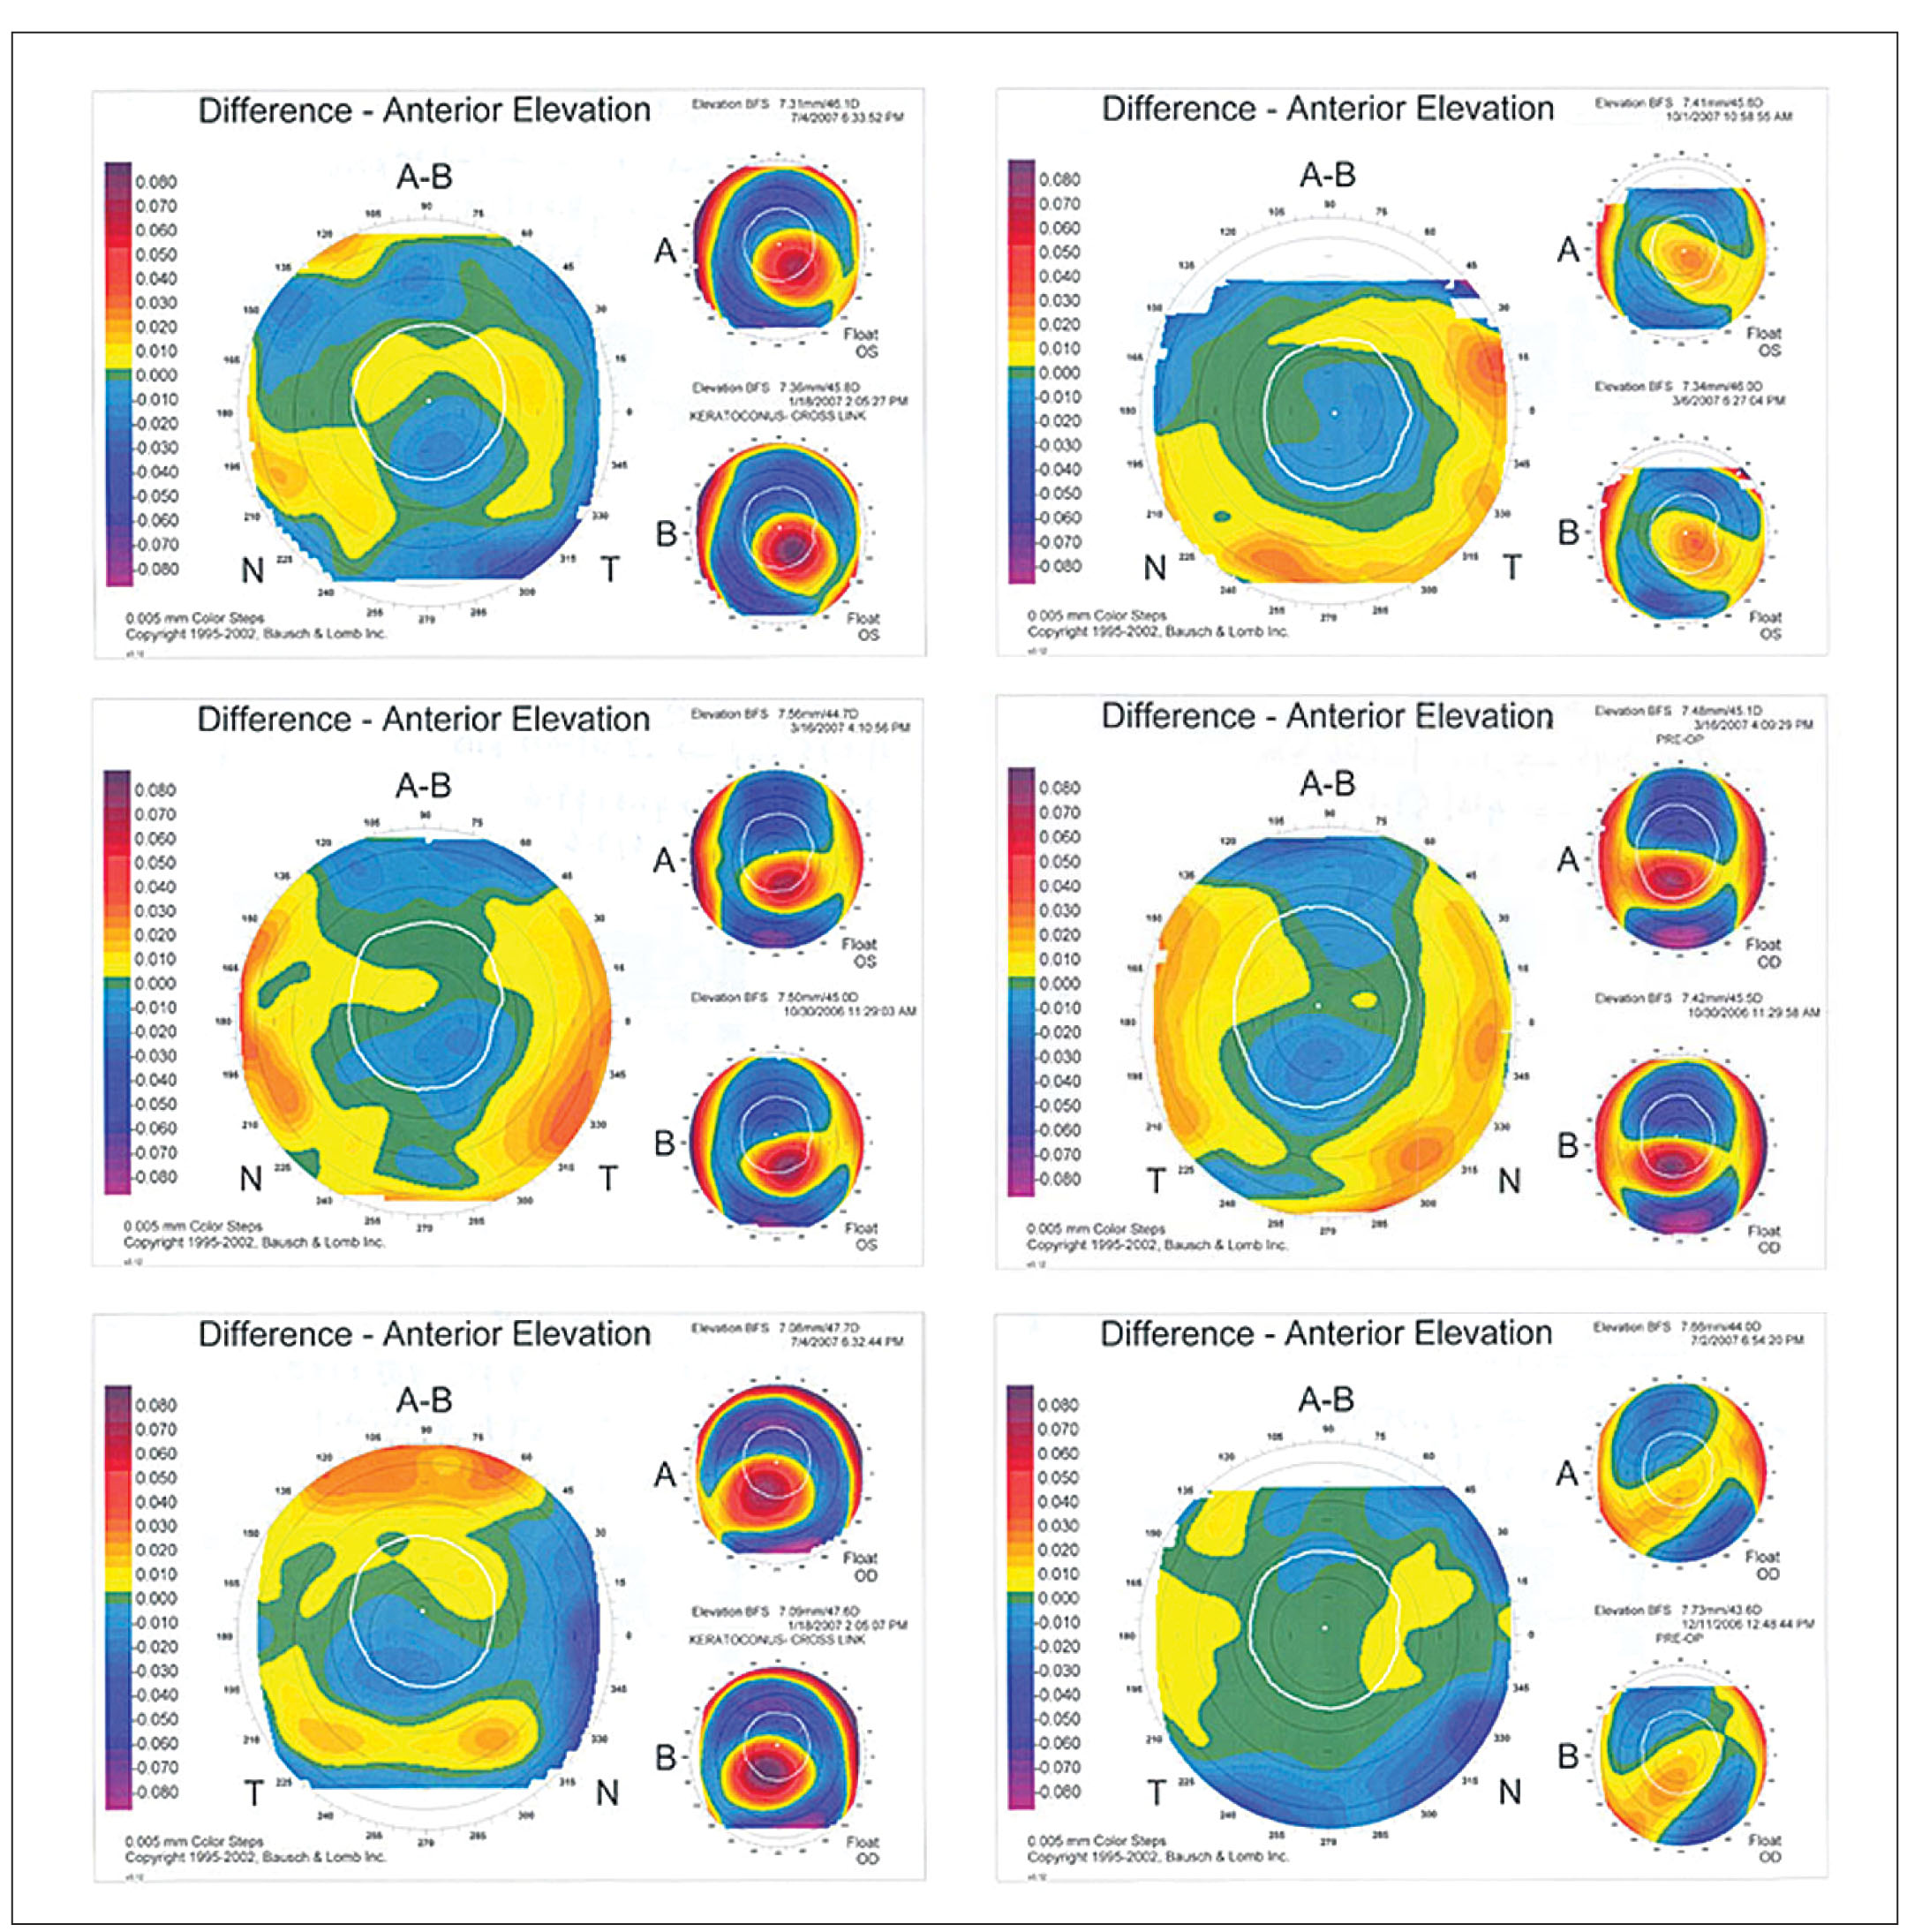 Orbscan II Anterior Elevation (pre- to Postoperative) Difference Maps in Six Eyes Showing Pattern 1 Change—Paracentral Steepening and Central Flattening.